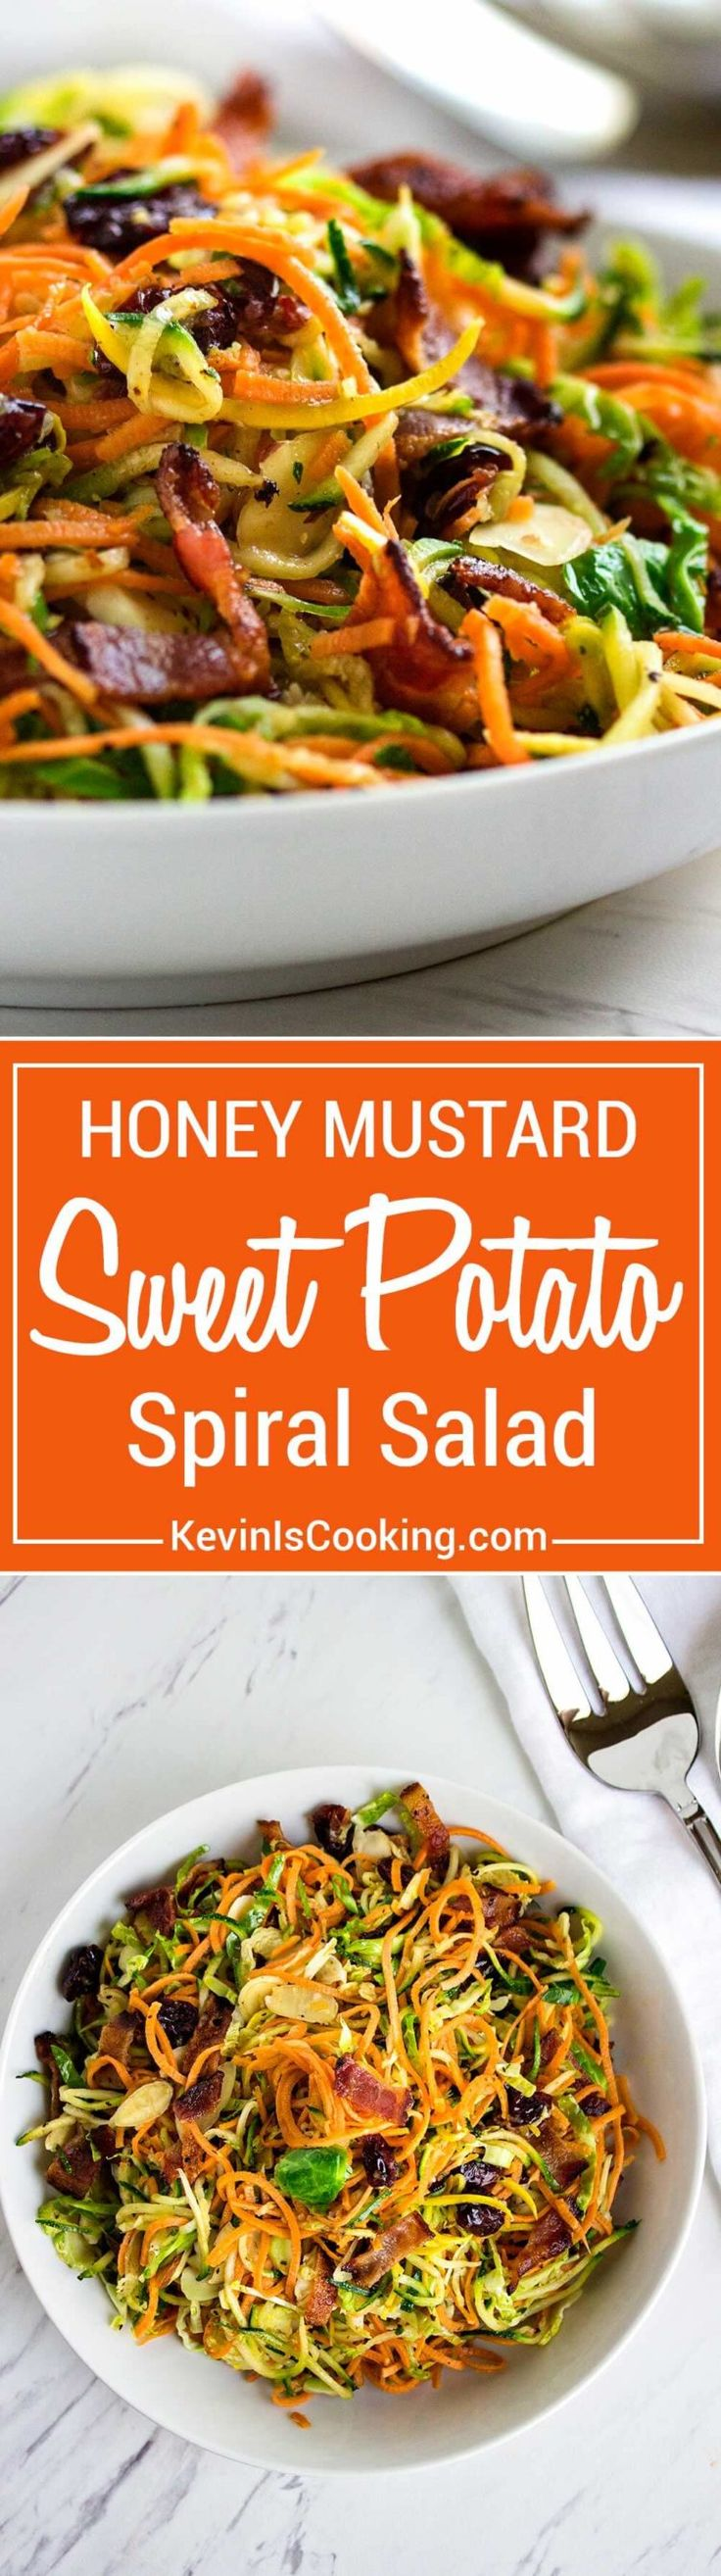 This Honey Mustard Sweet Potato Salad is made with with spiralized sweet potatoes, zucchini and shaved brussels sprouts in a bacon honey mustard dressing. via @keviniscooking